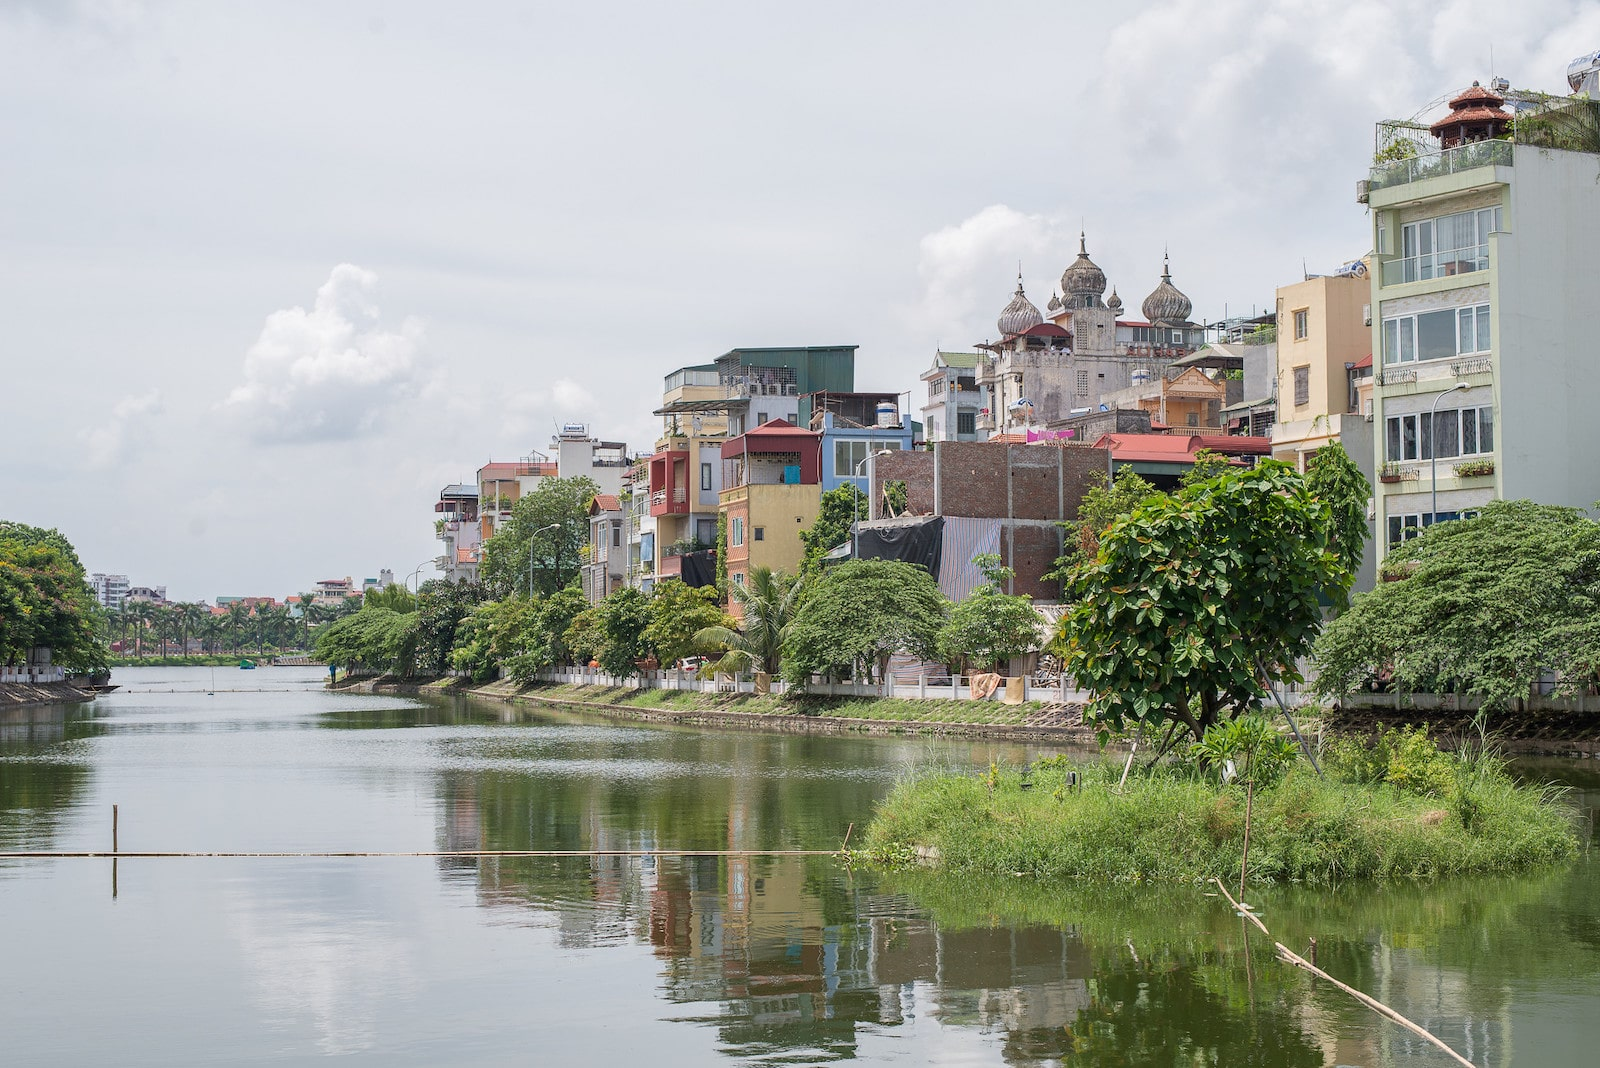 Image of buildings by a river in Vietnam